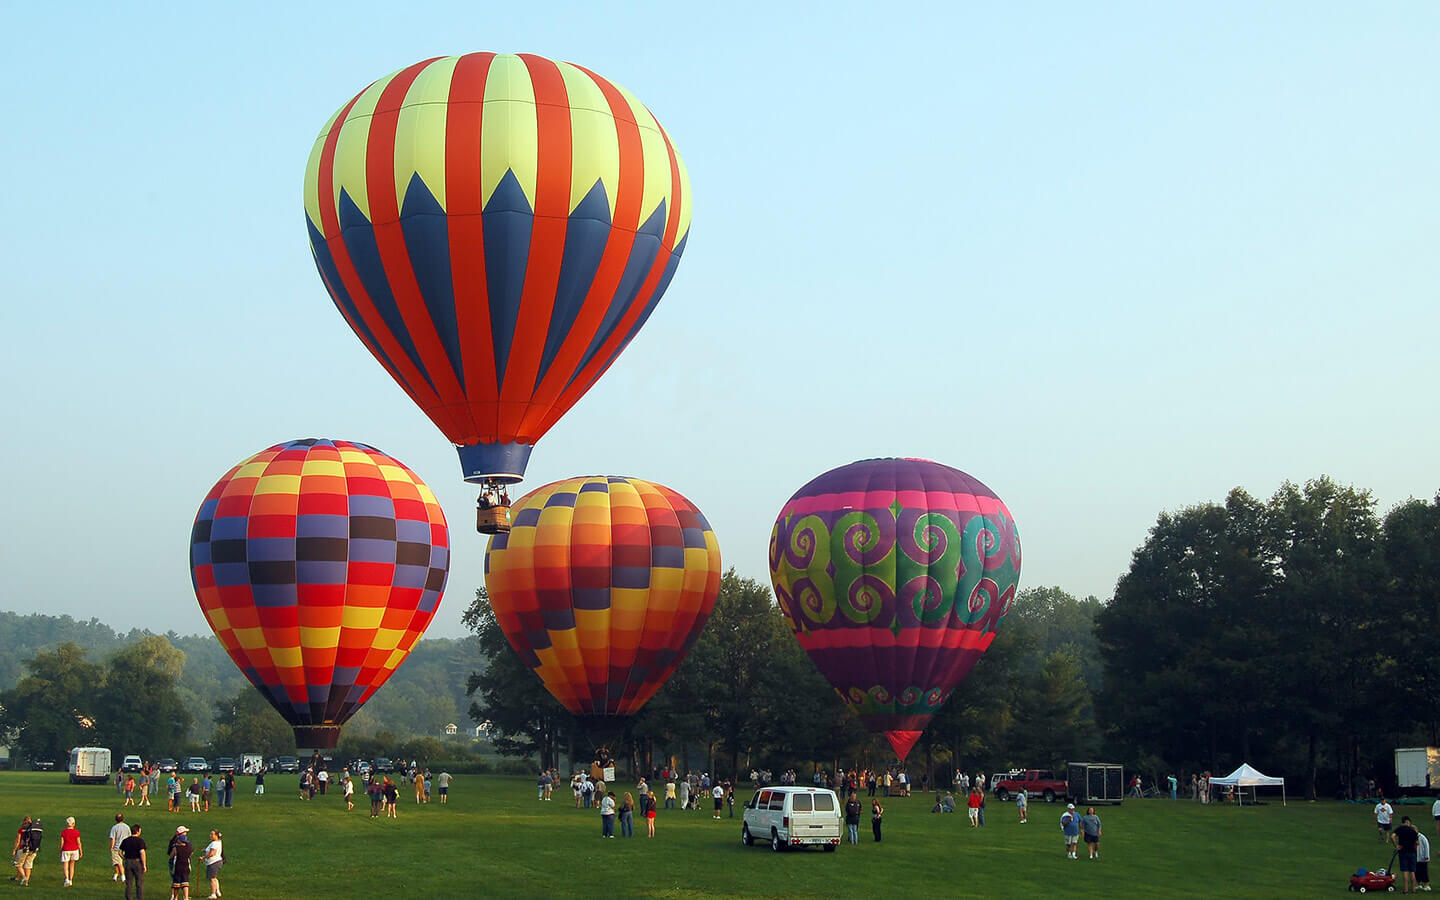 Hot air balloons in Lancaster County